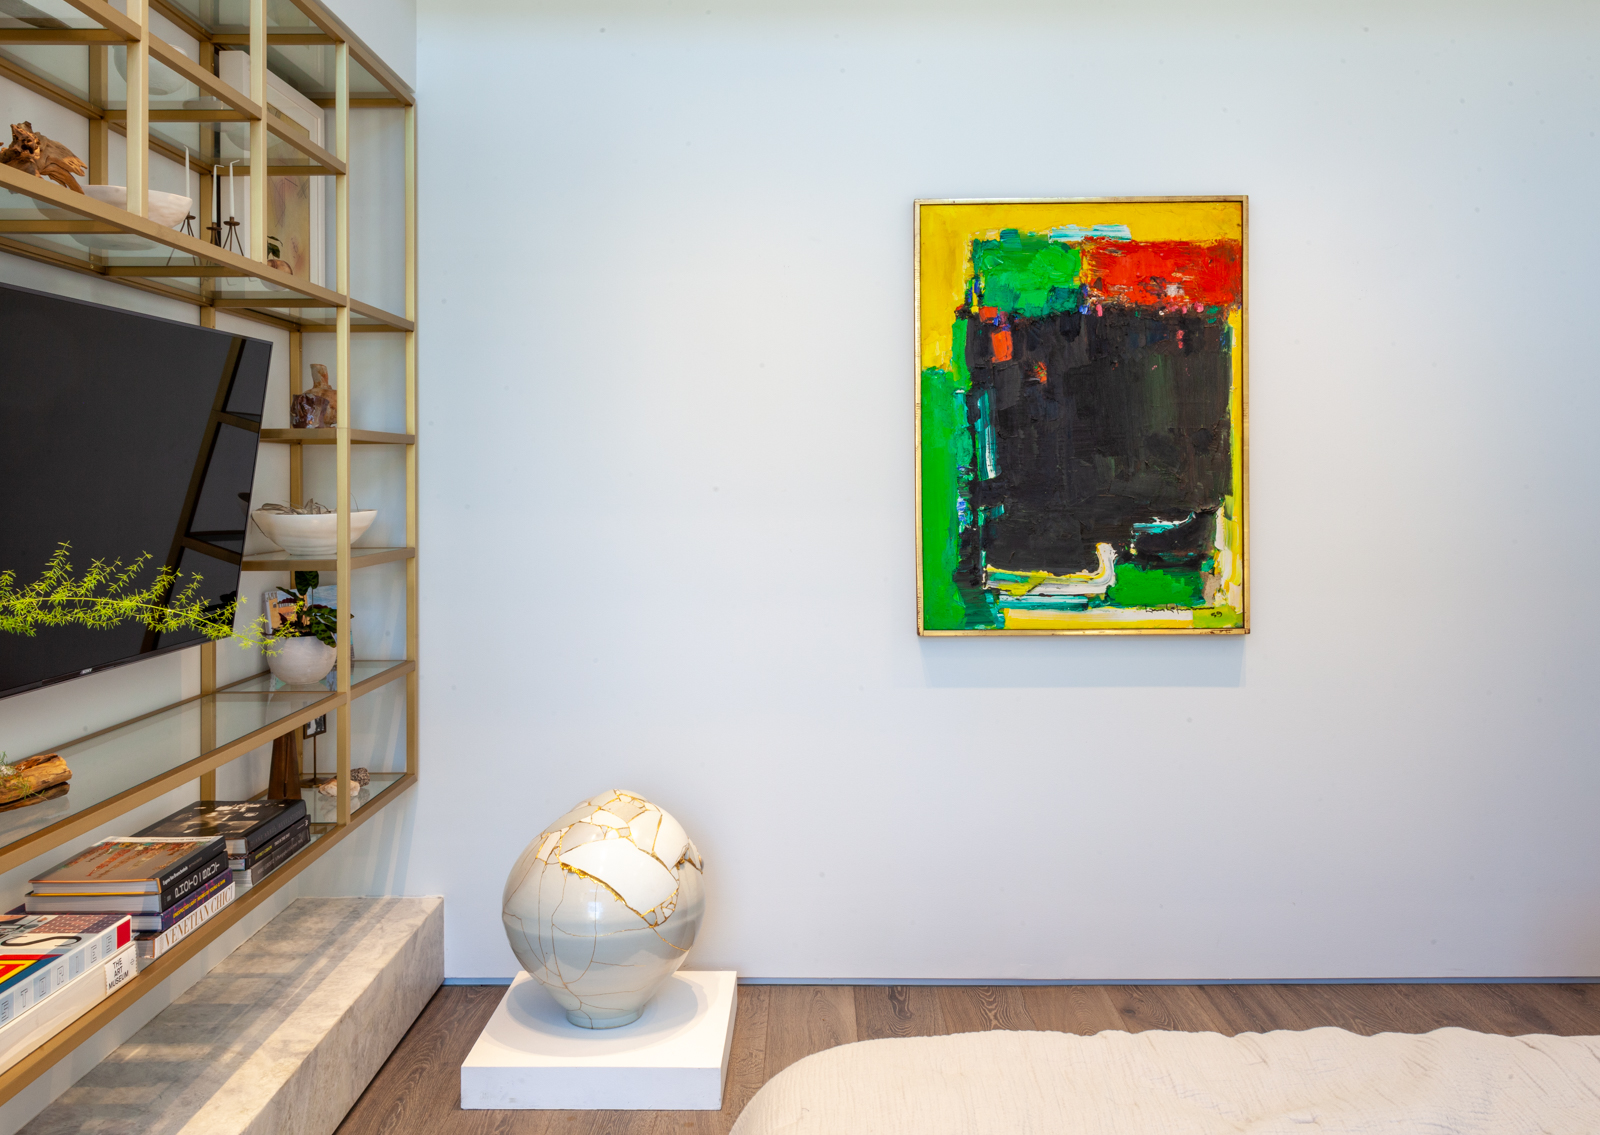 Hans Hofmann, Blissful Darkness, 1959, in the Gupta Moss collection, Chicago.